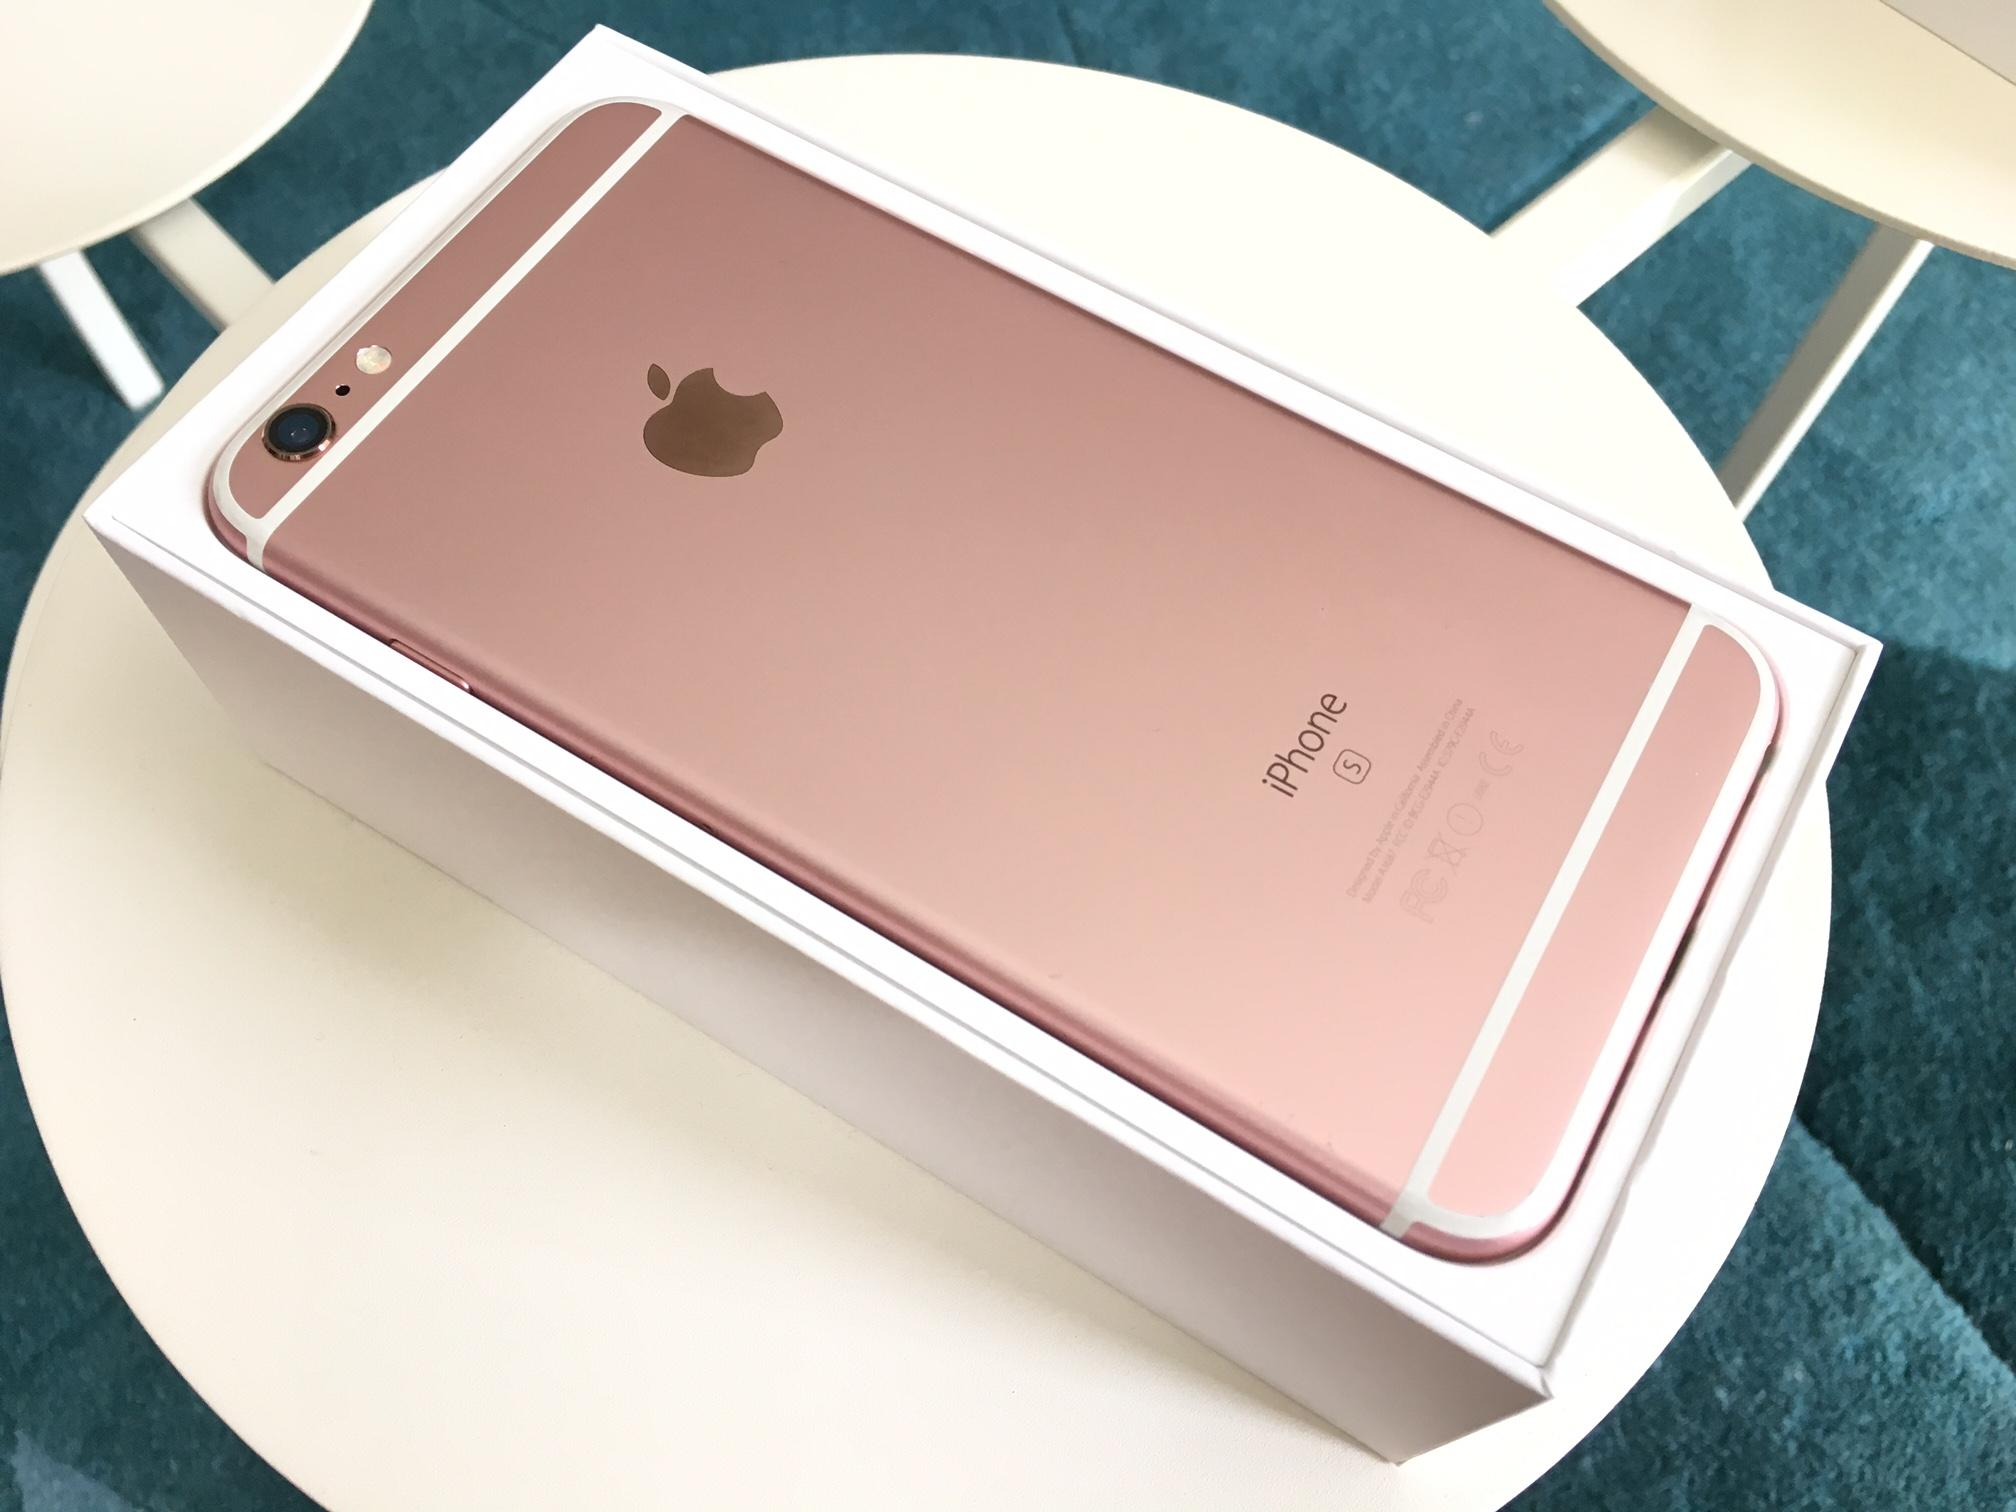 iphone 6s plus rose gold 16gb. Black Bedroom Furniture Sets. Home Design Ideas